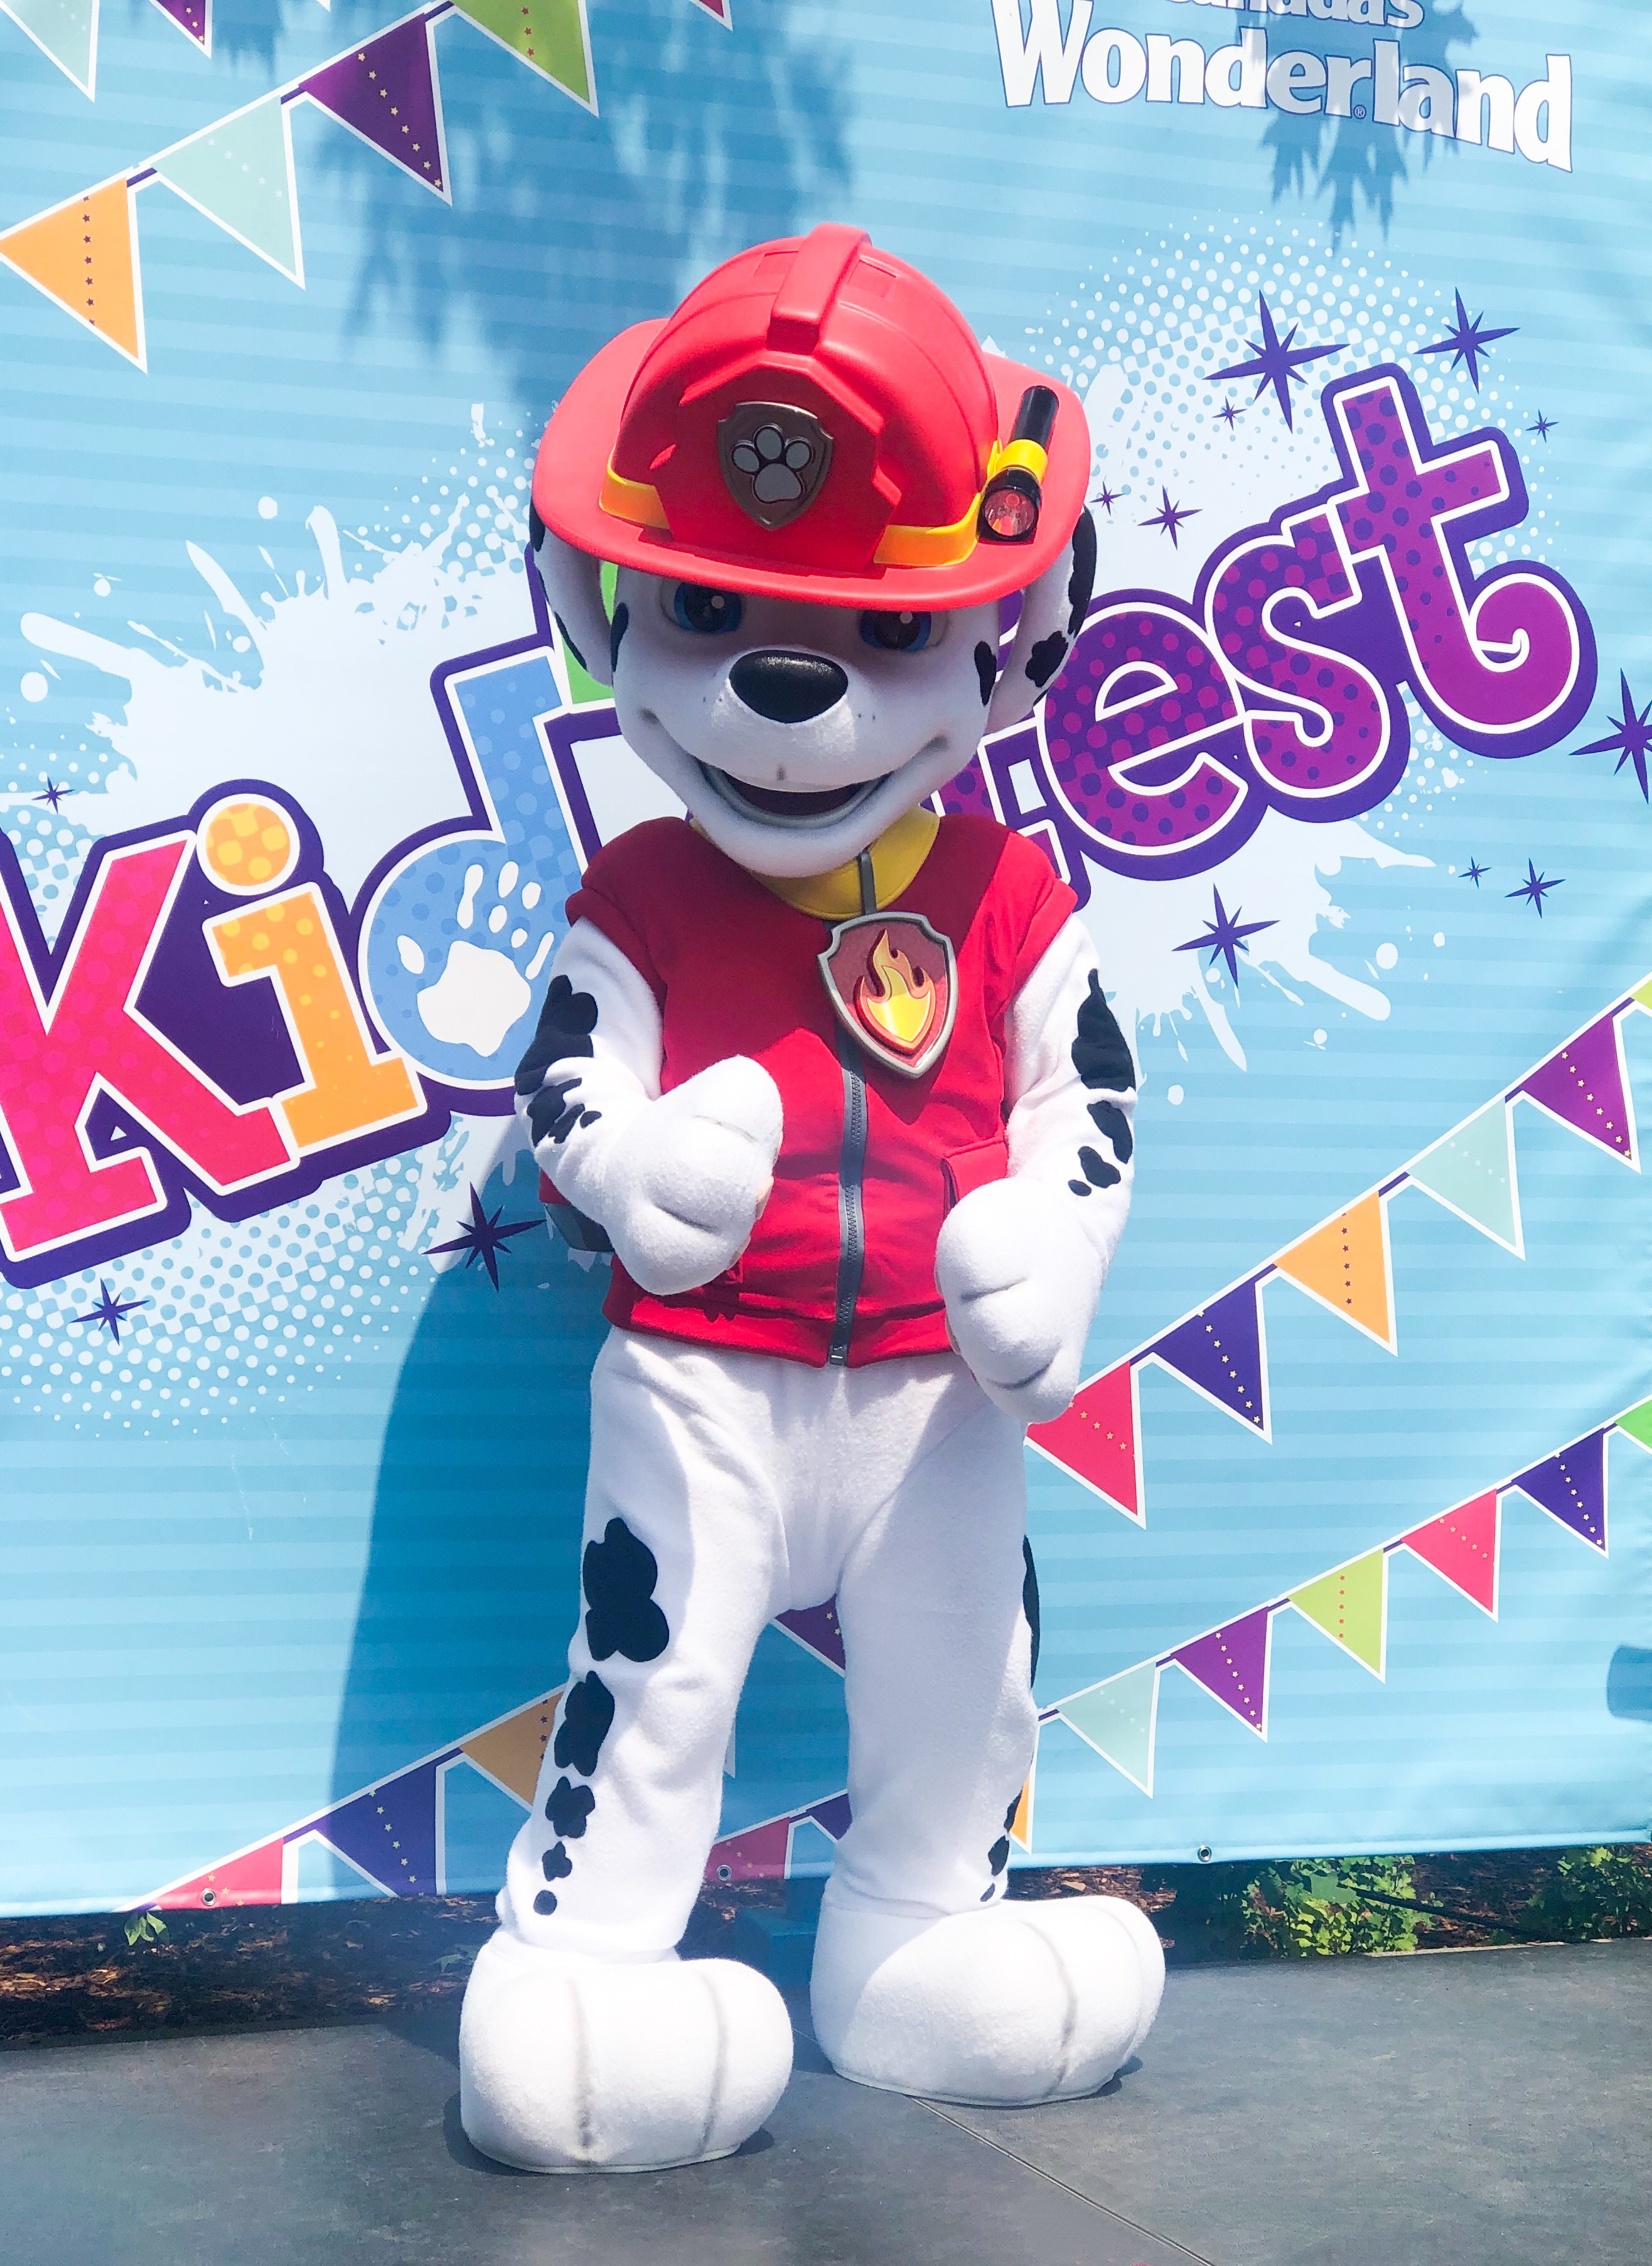 Kidzfest at Canada's Wonderland on Livin' Life with Style